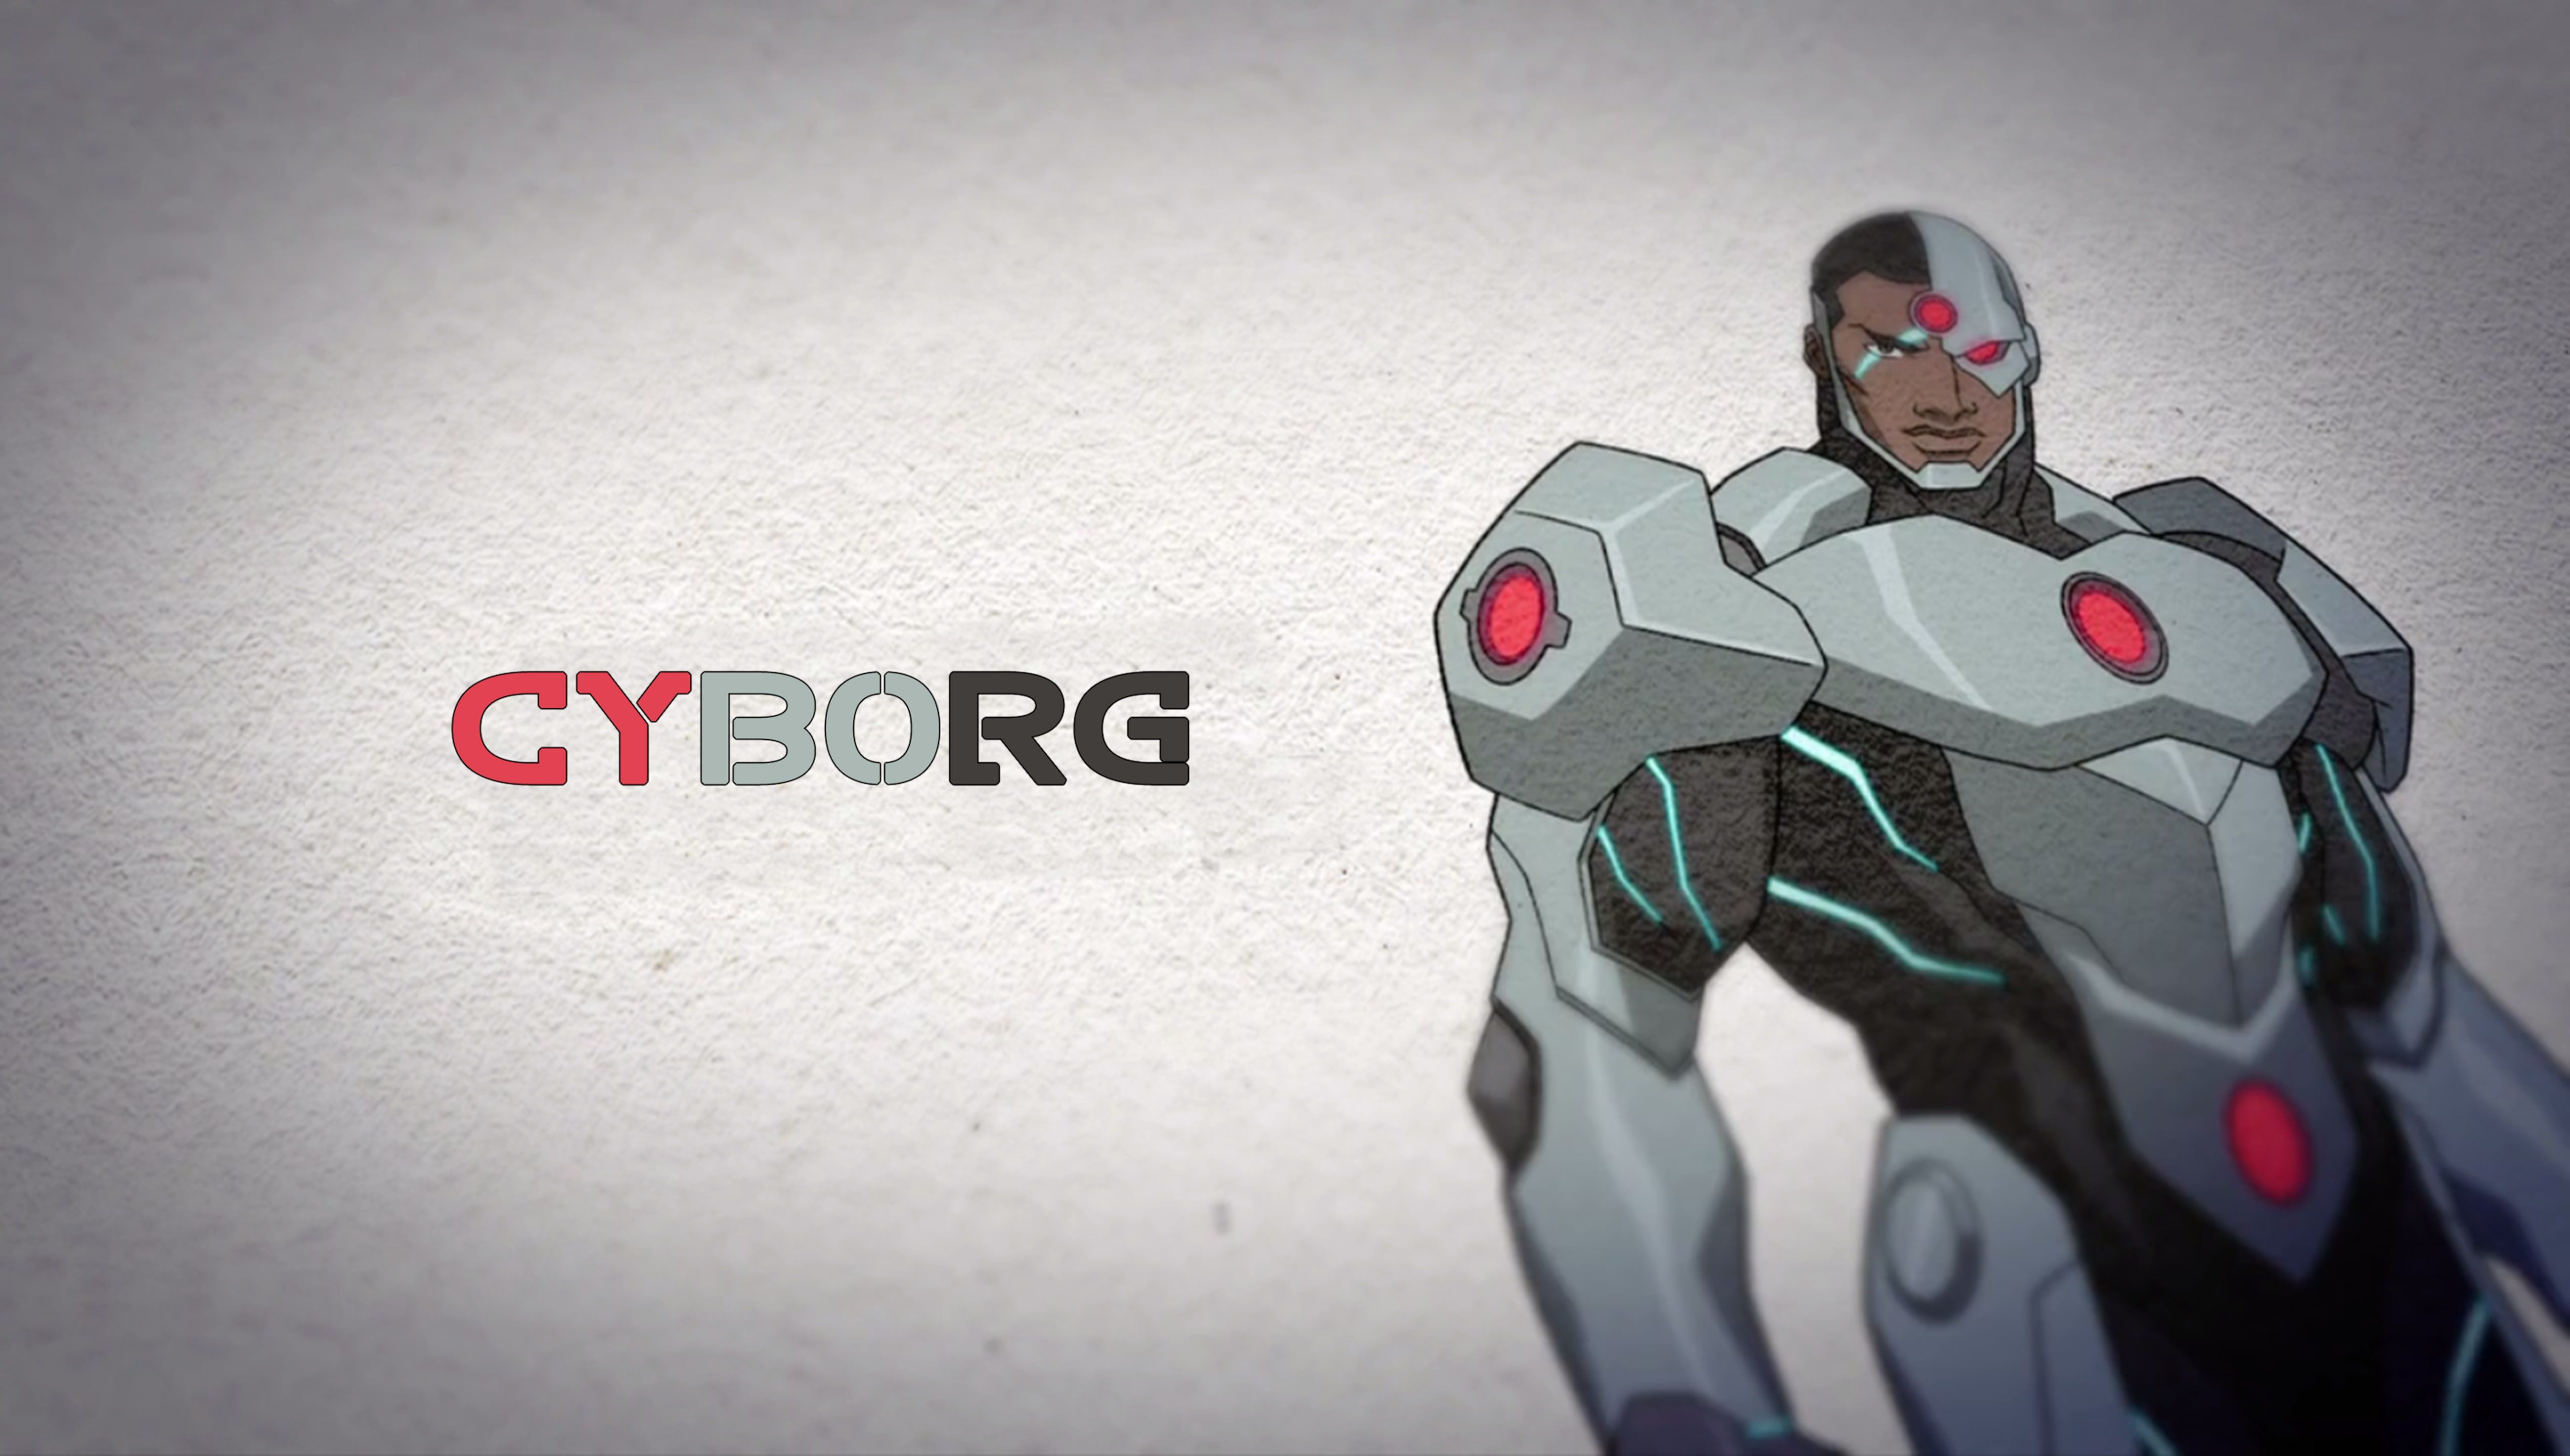 Cyborg Dc Comics Superheroes 5k Is An HD Desktop Wallpaper Posted In Our Free Image Collection Of Wallpapers